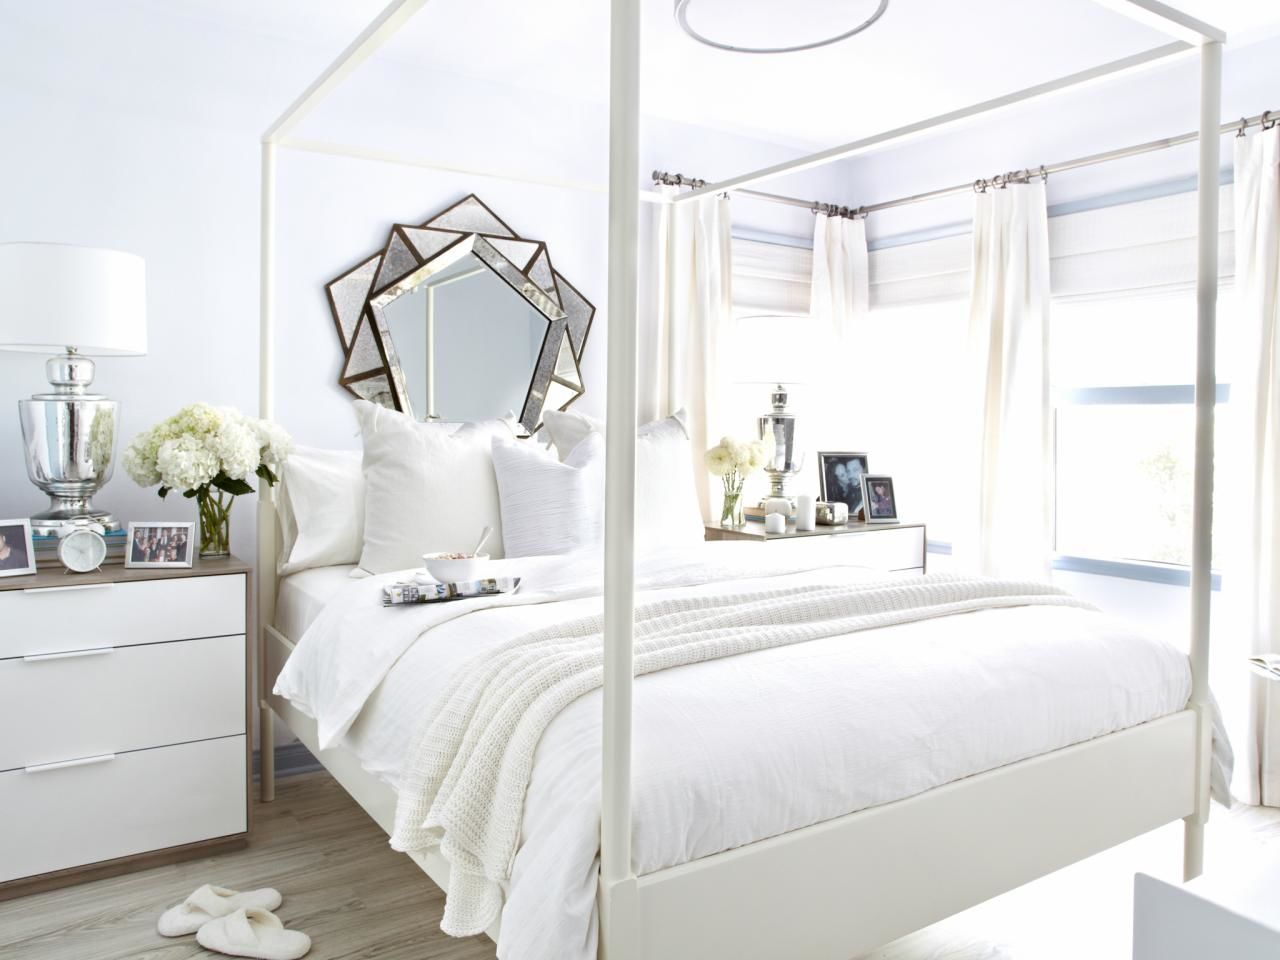 Interior Design Tips For A Small Bedroom  Bedrooms Interiors And Captivating Small Bedroom Design Tips Design Decoration